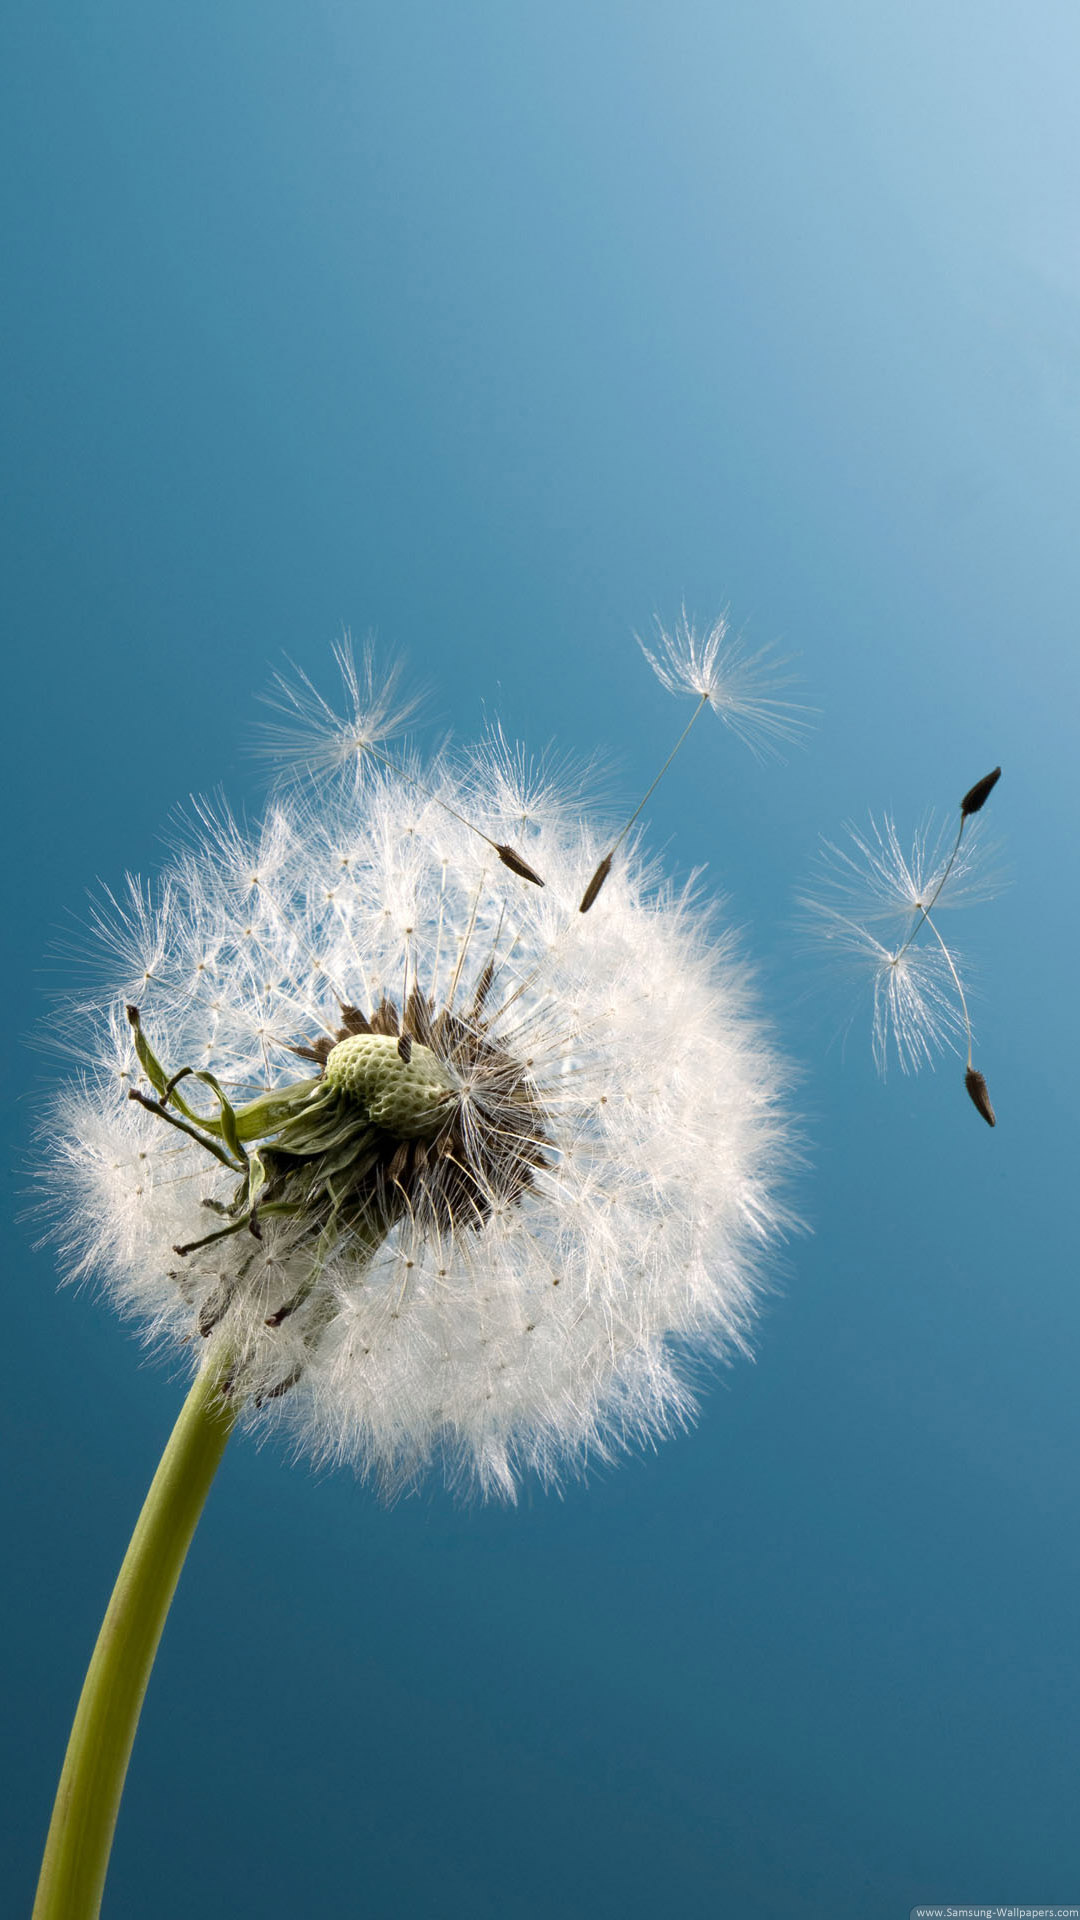 Dandelion Wind Blow Android Wallpaper free download